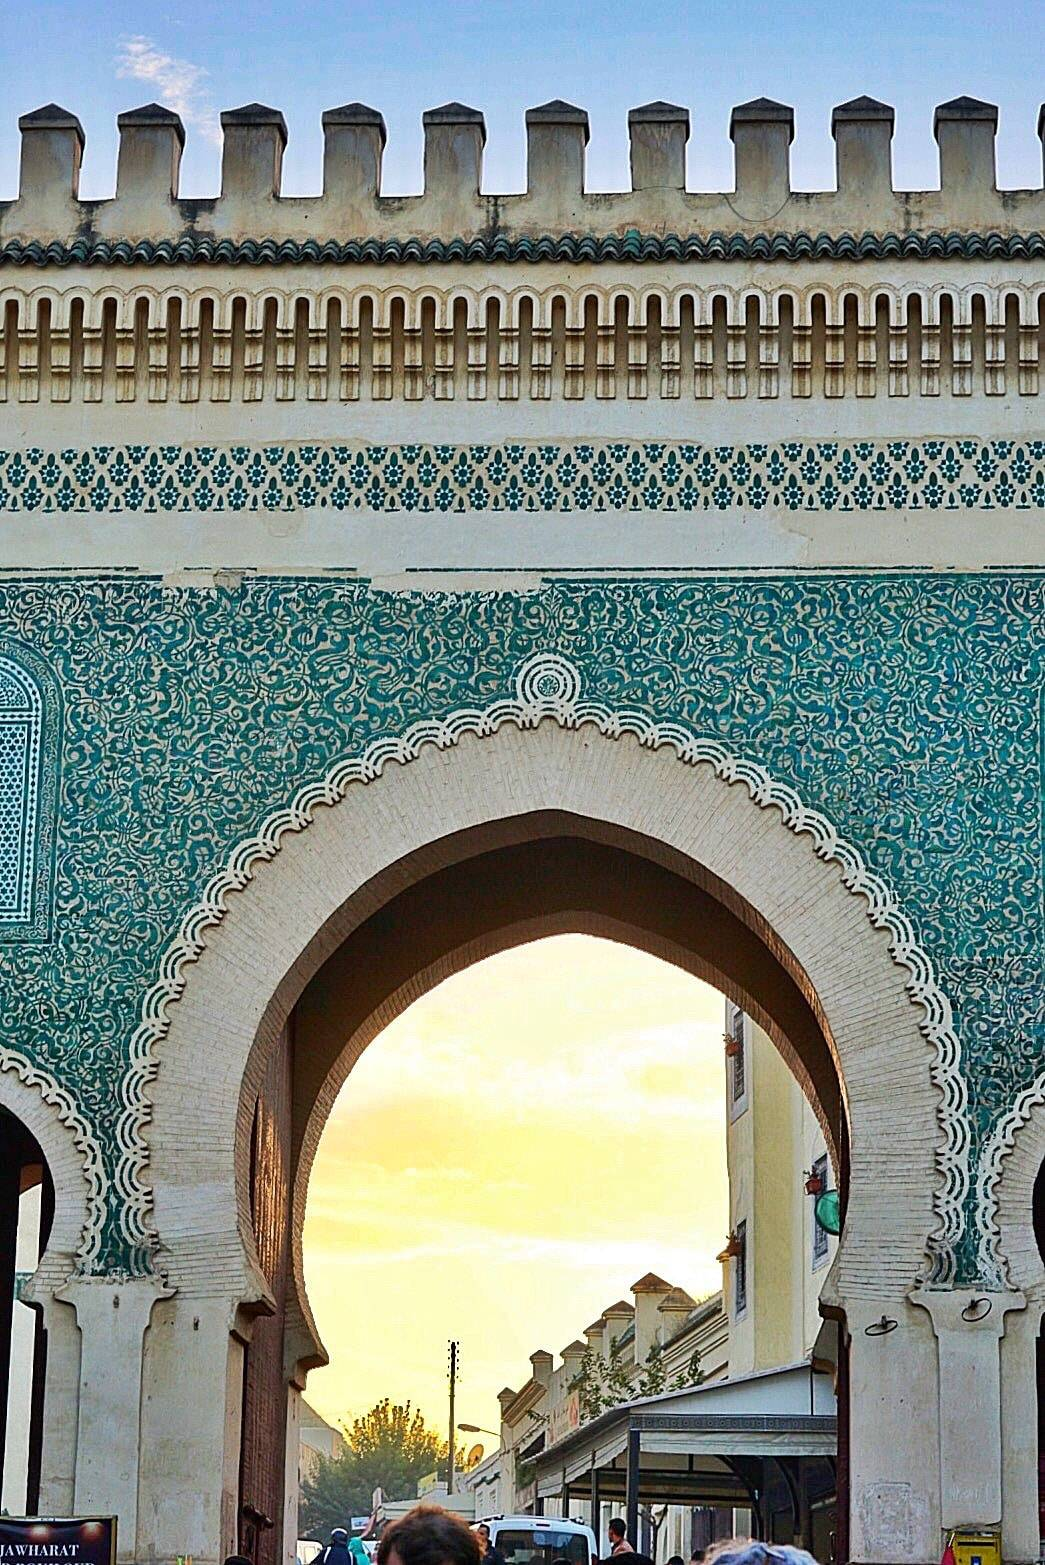 The Blue Gate of Fes at Sunset in Morocco